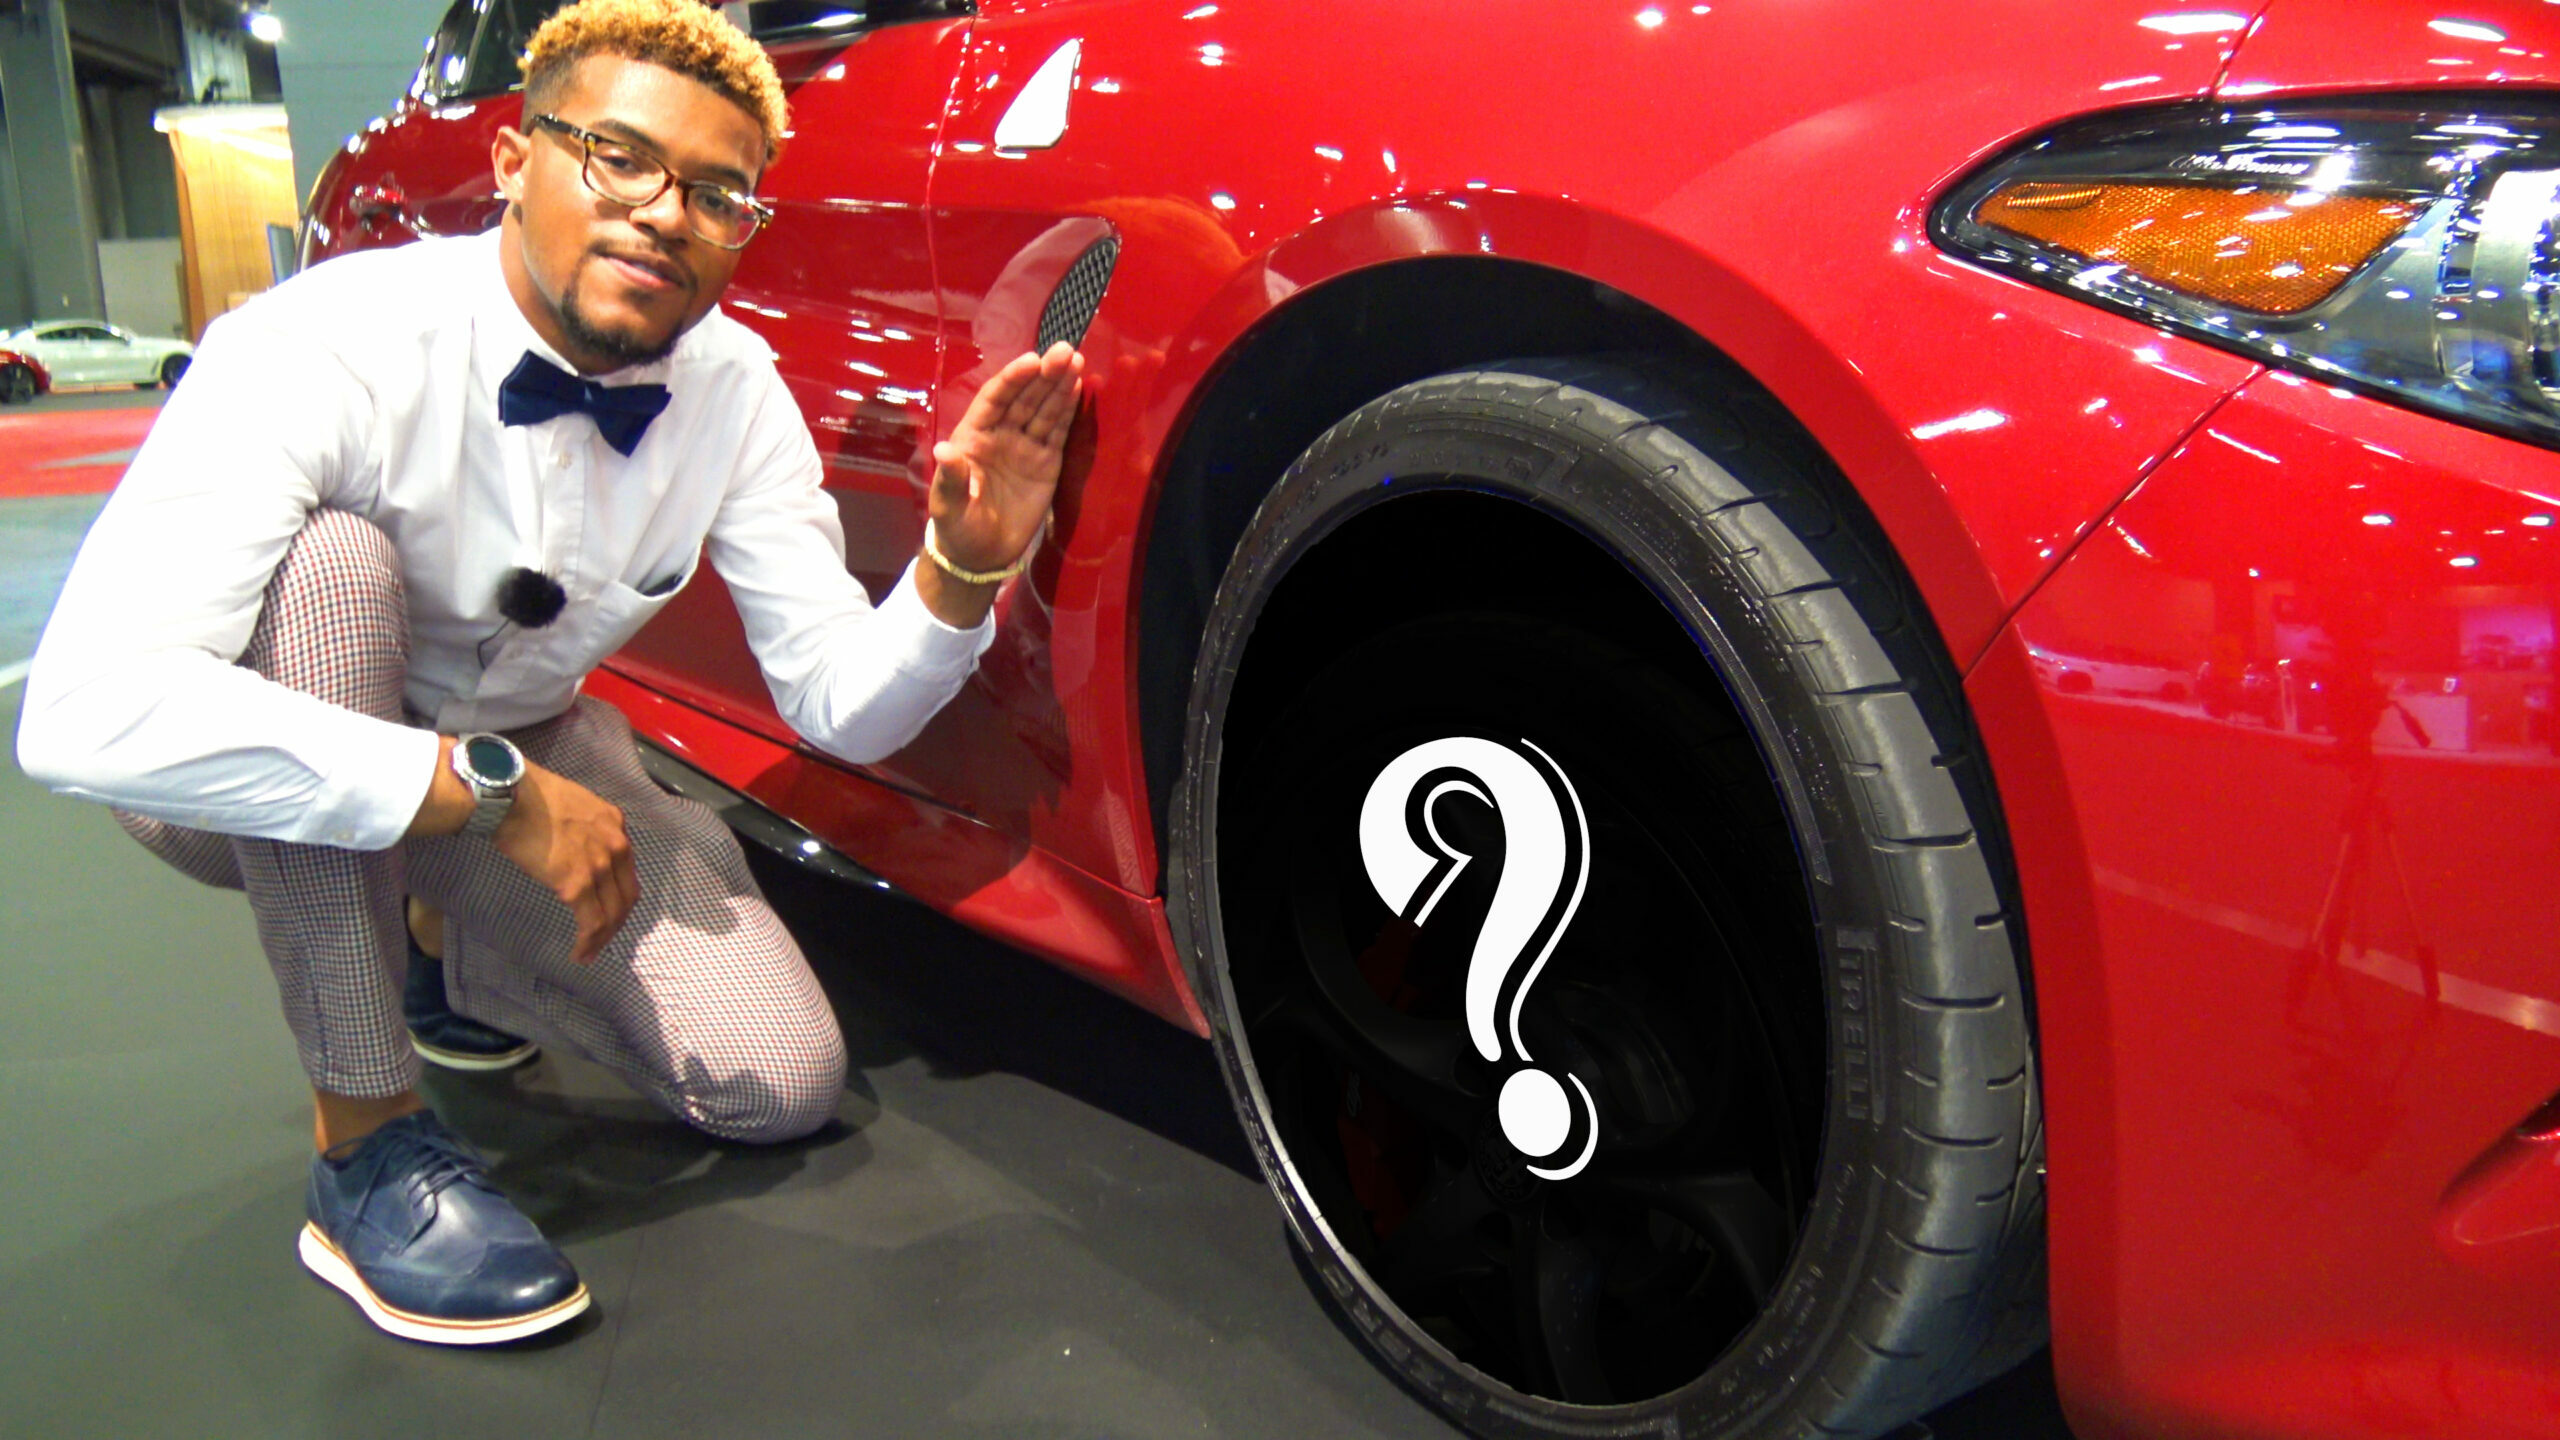 Marcus Walker next to red car (question mark covering the car's wheel/rim design).